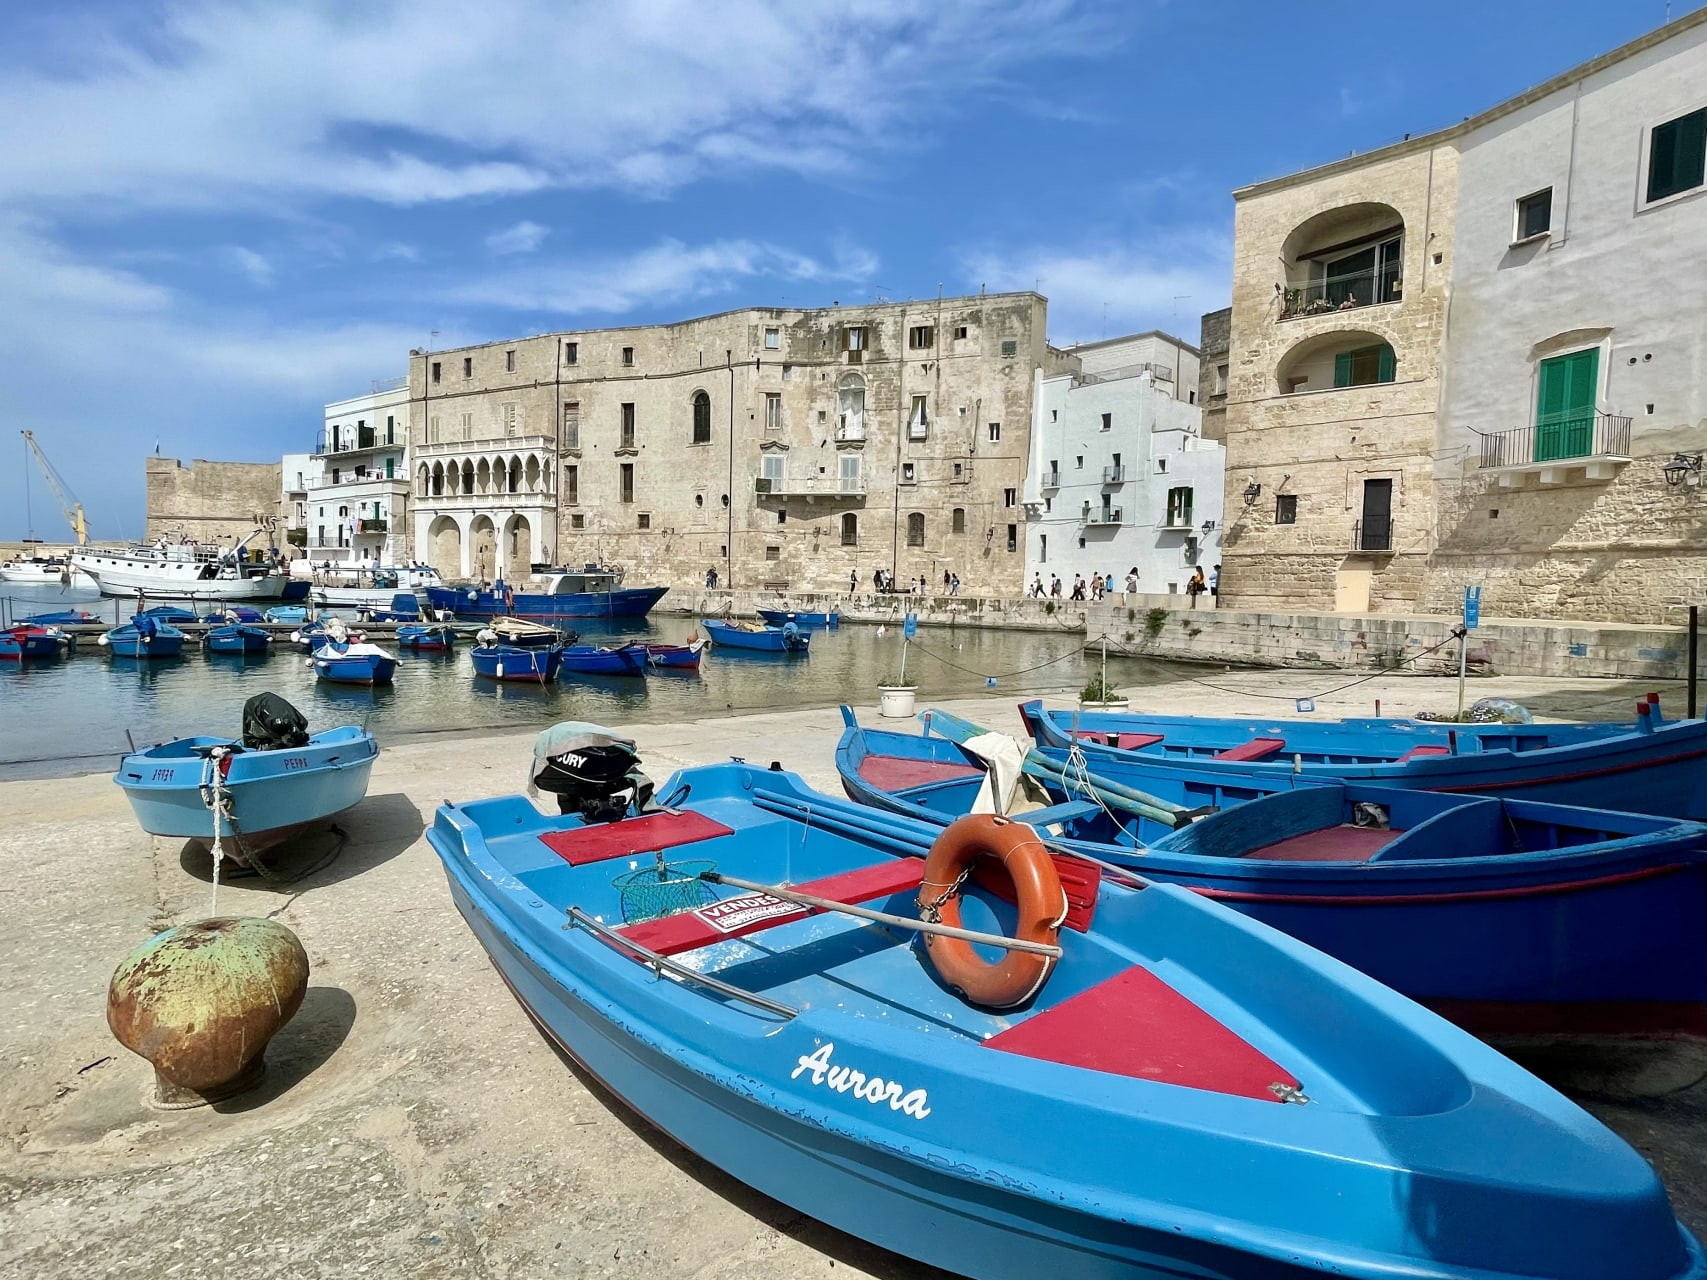 Puglia - The picturesque Ancient Town of Monopoli: A Quintessentially Southern Italian Experience